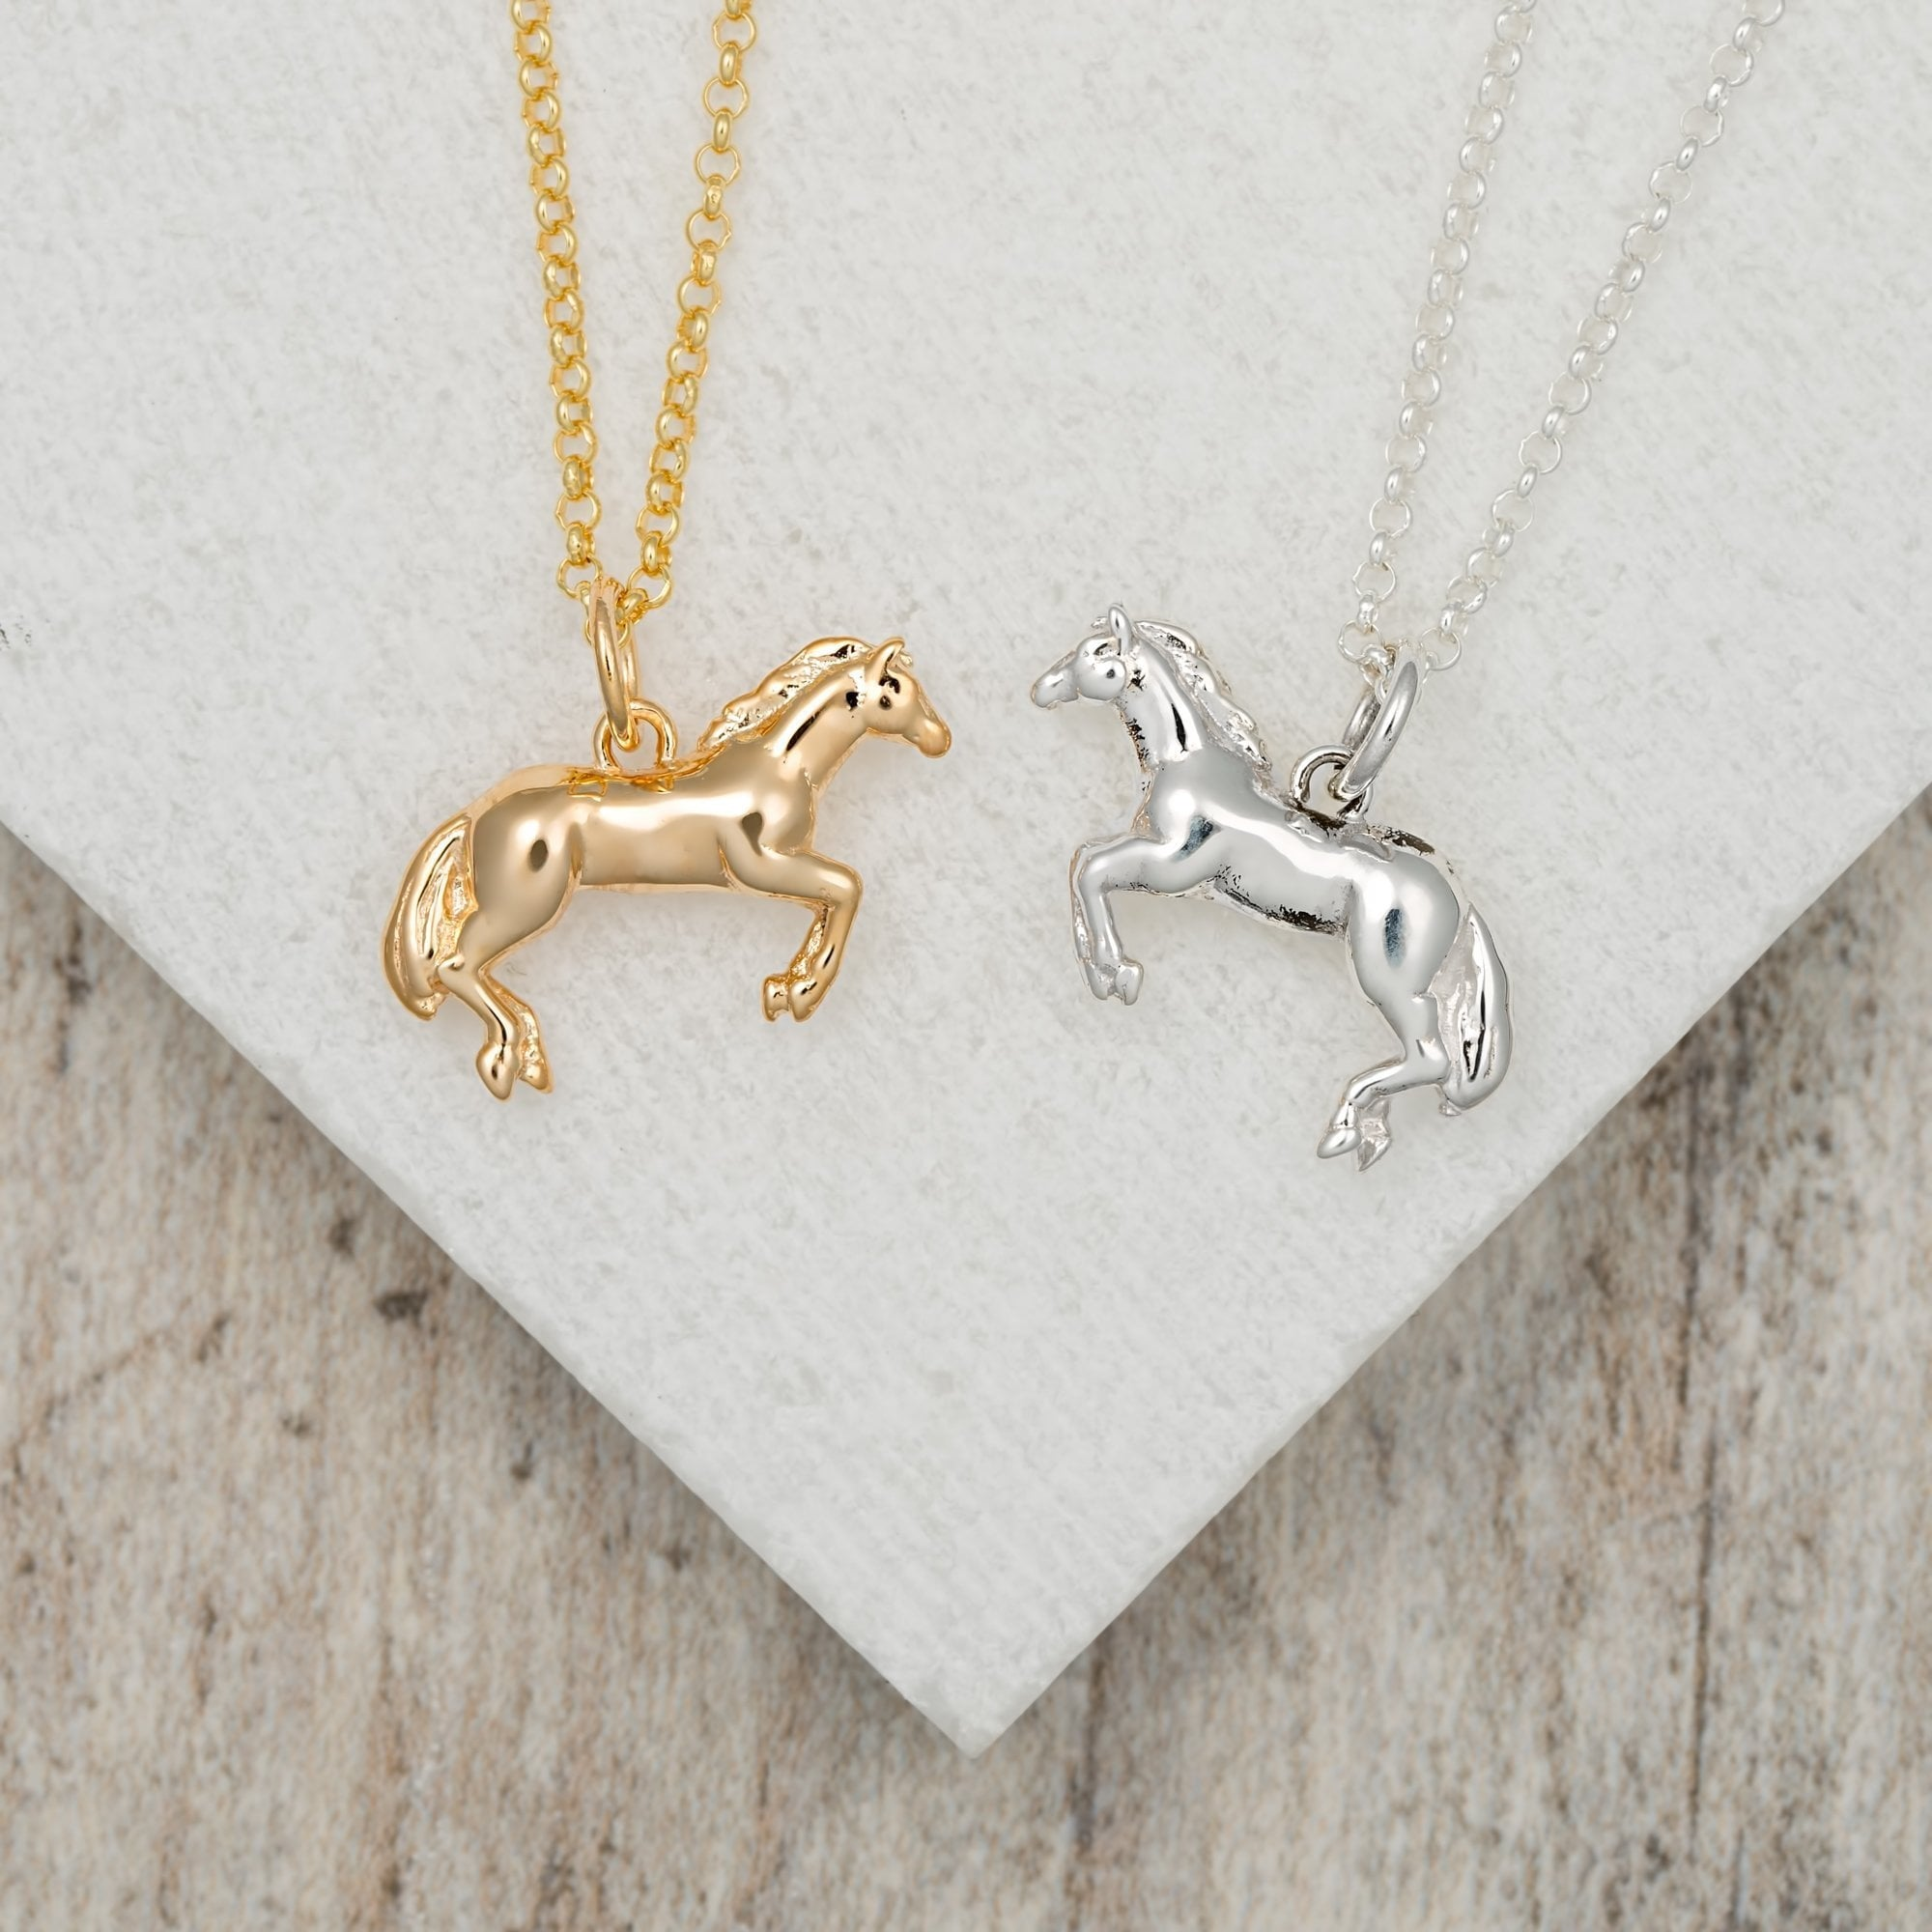 Personalised Gold Plated Horse Necklace - Lily Charmed